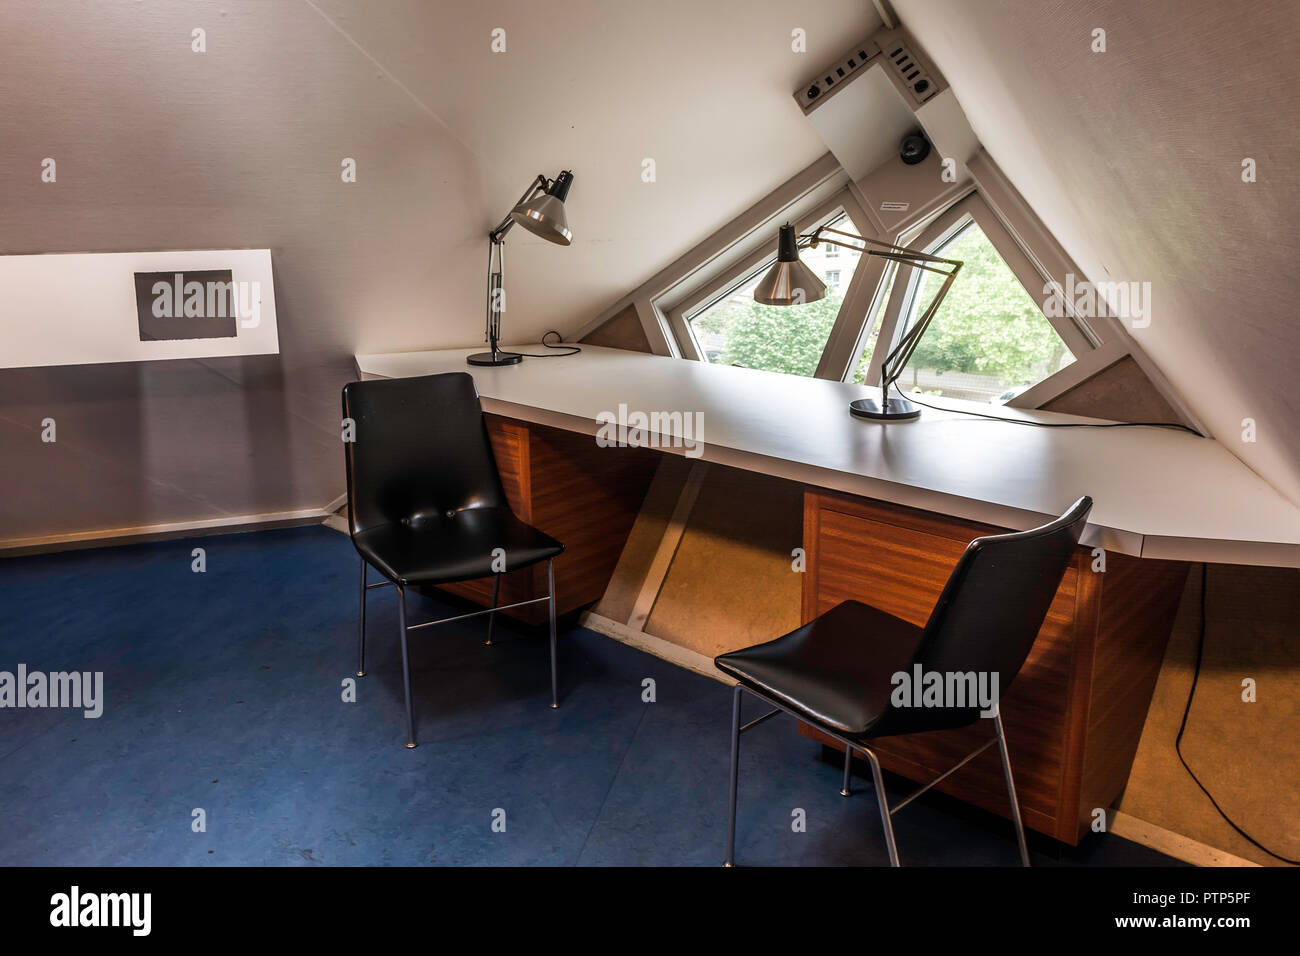 Room in The Kijk-Kubus (Show-Cube) - a furnished museum house, designed and constructed for the visitors - Stock Image